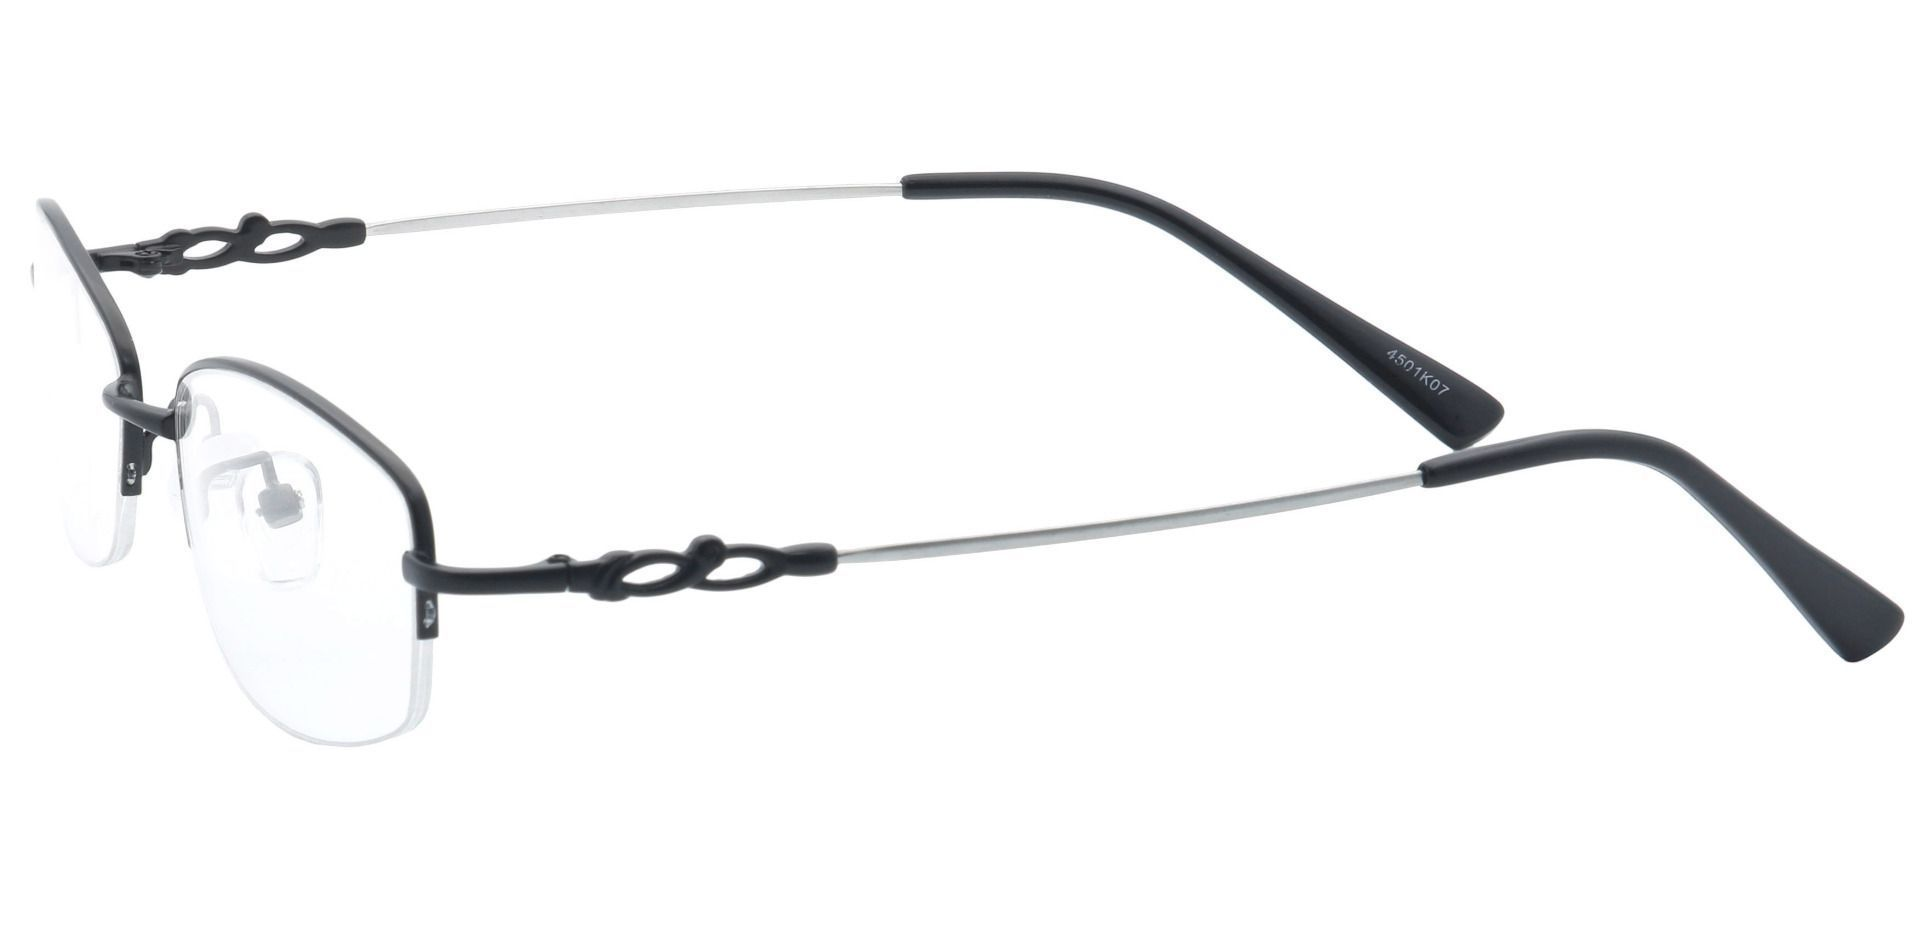 Meadowsweet Oval Reading Glasses - Black